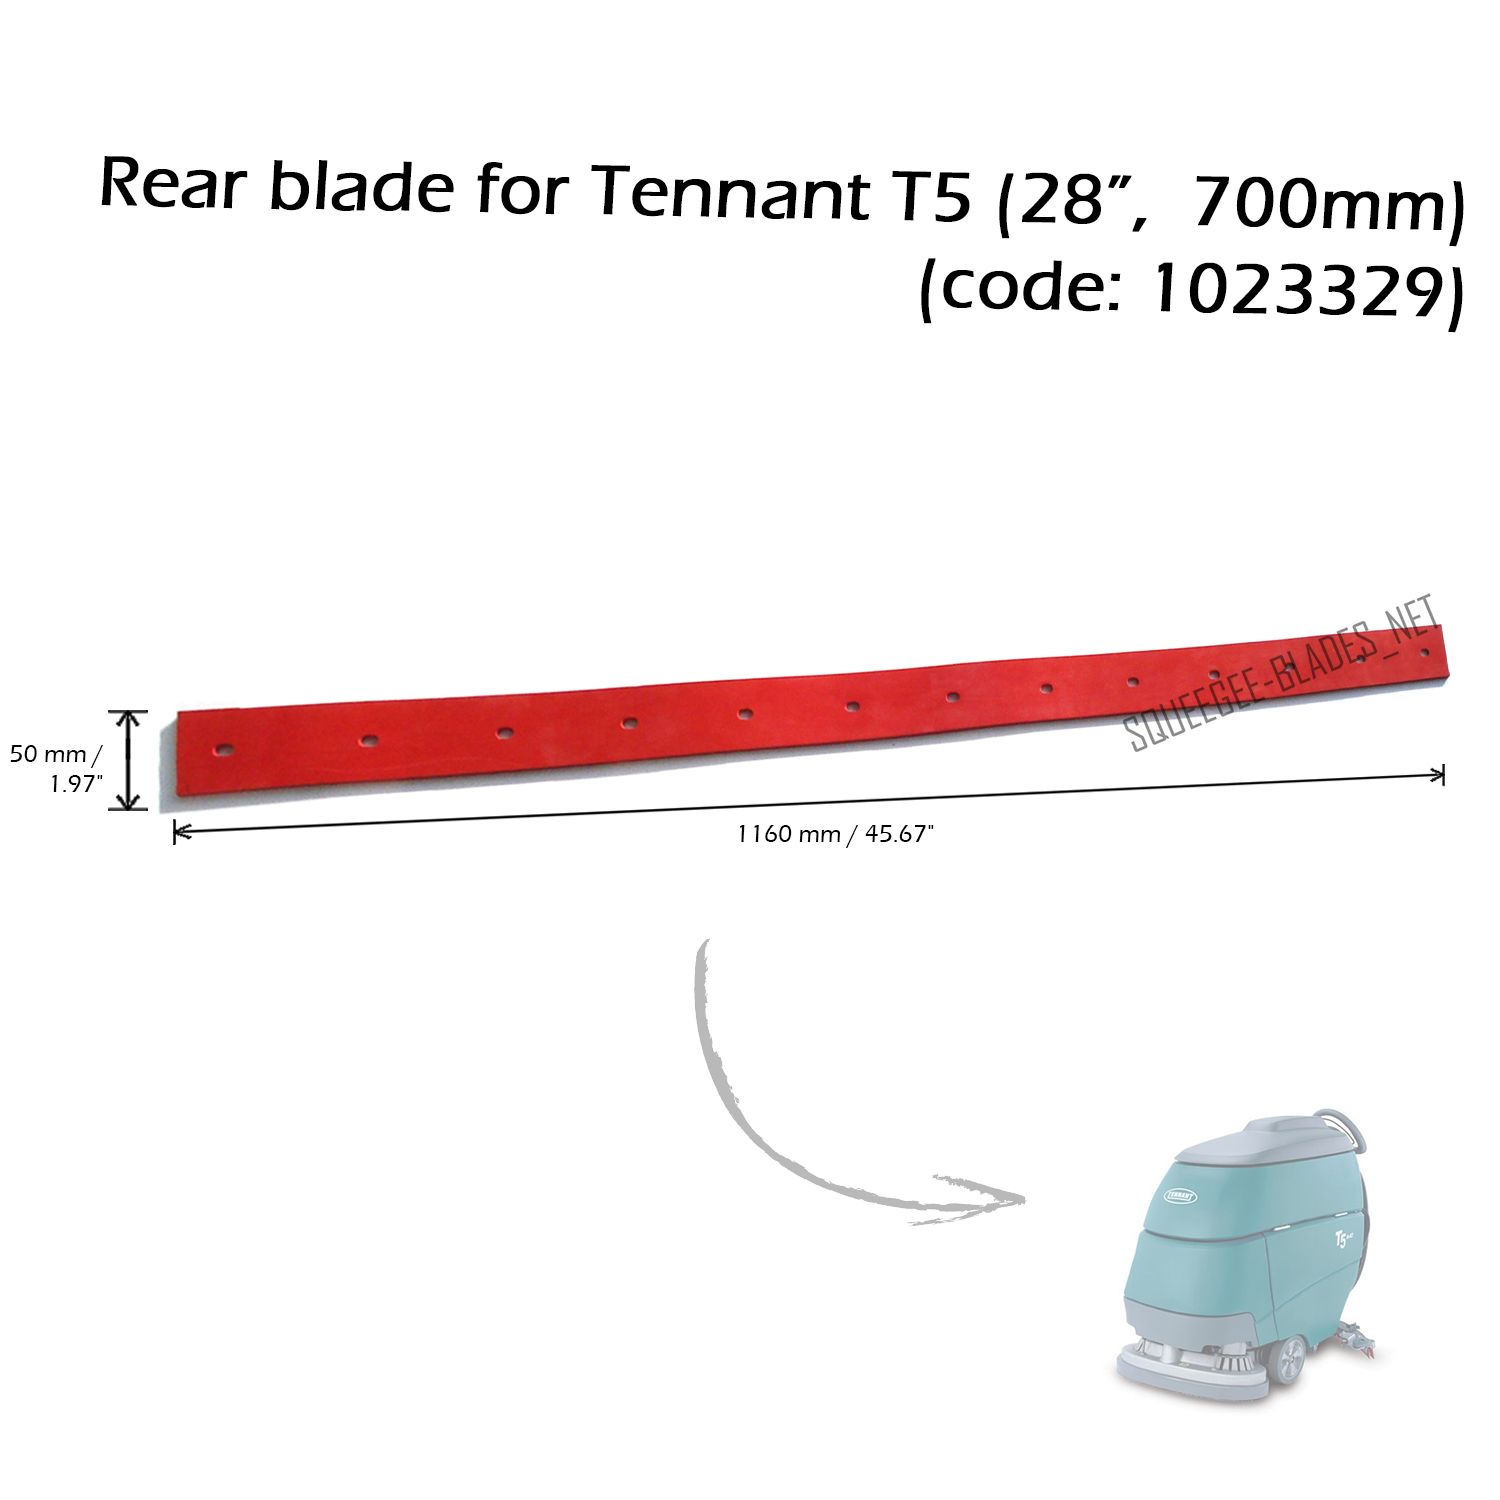 "Squeegee blade set for Tennant T5 (28"", 700mm) - FREE WORLDWIDE SHIPPING! 3"